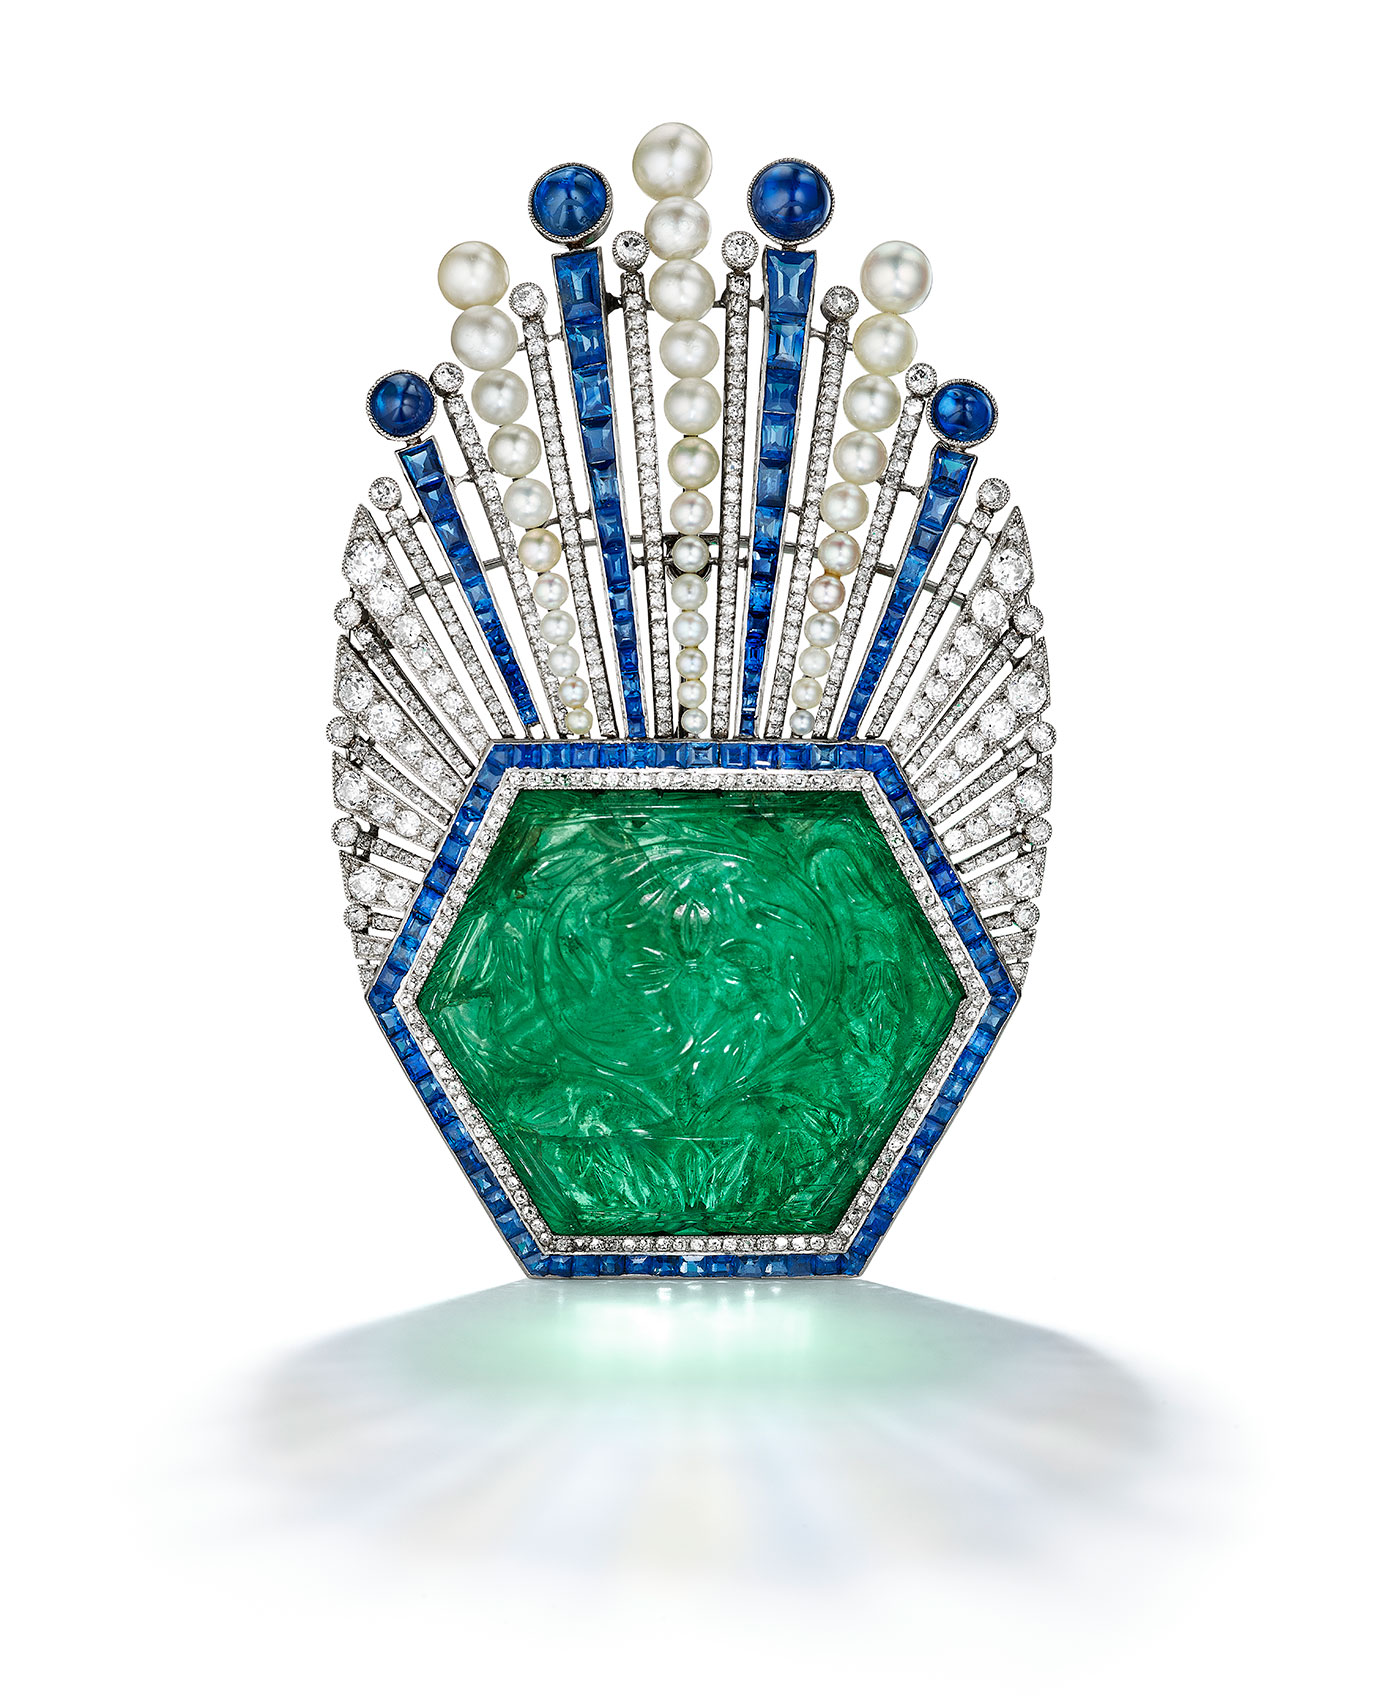 Emerald-and-Sapphire-Brooch